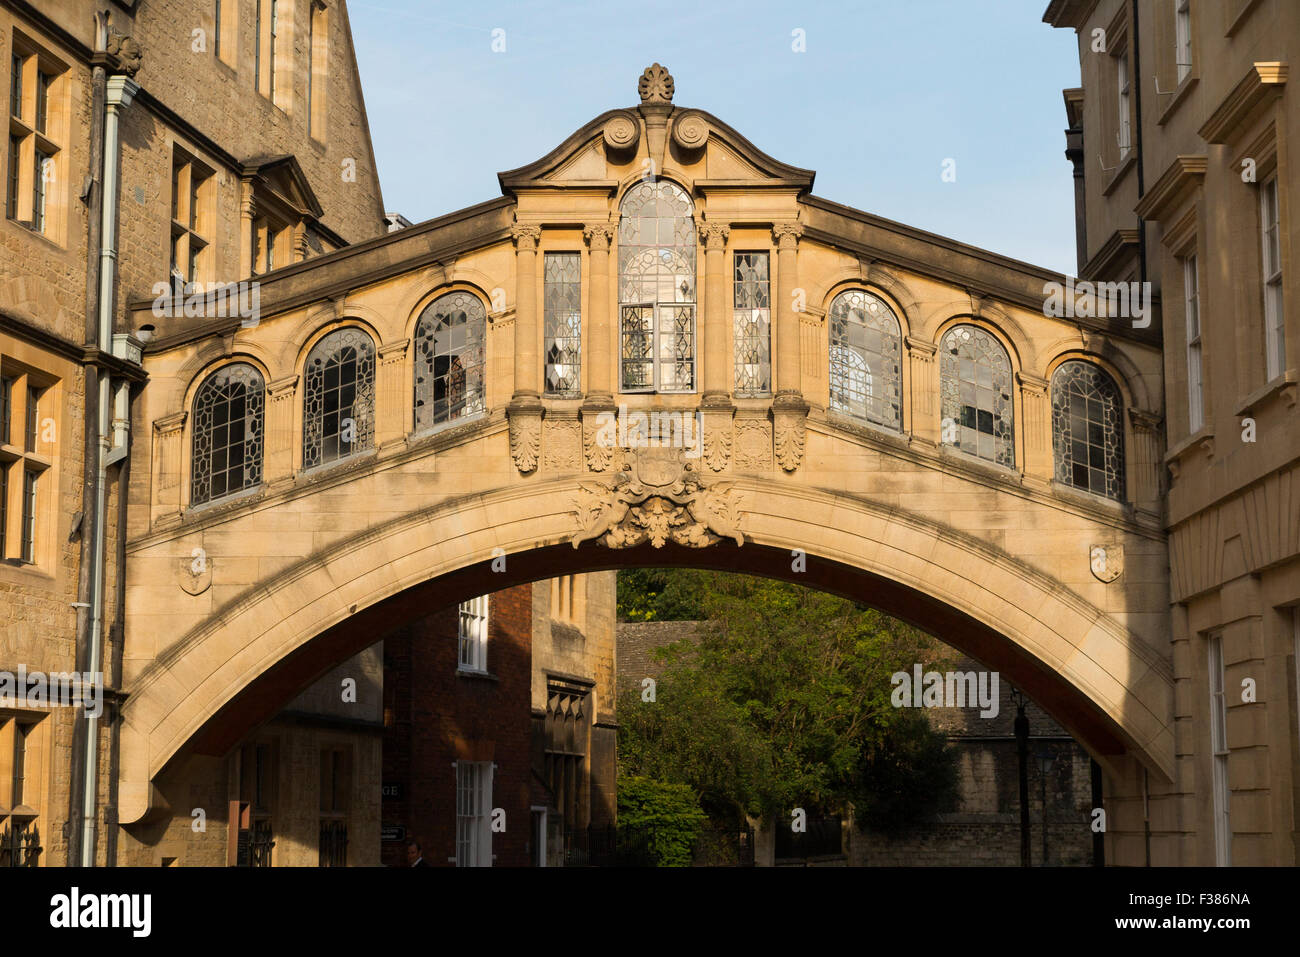 The Hertford Bridge, popularly known as the Bridge of Sighs, New College Lane, Oxford, Oxfordshire, UK. - Stock Image